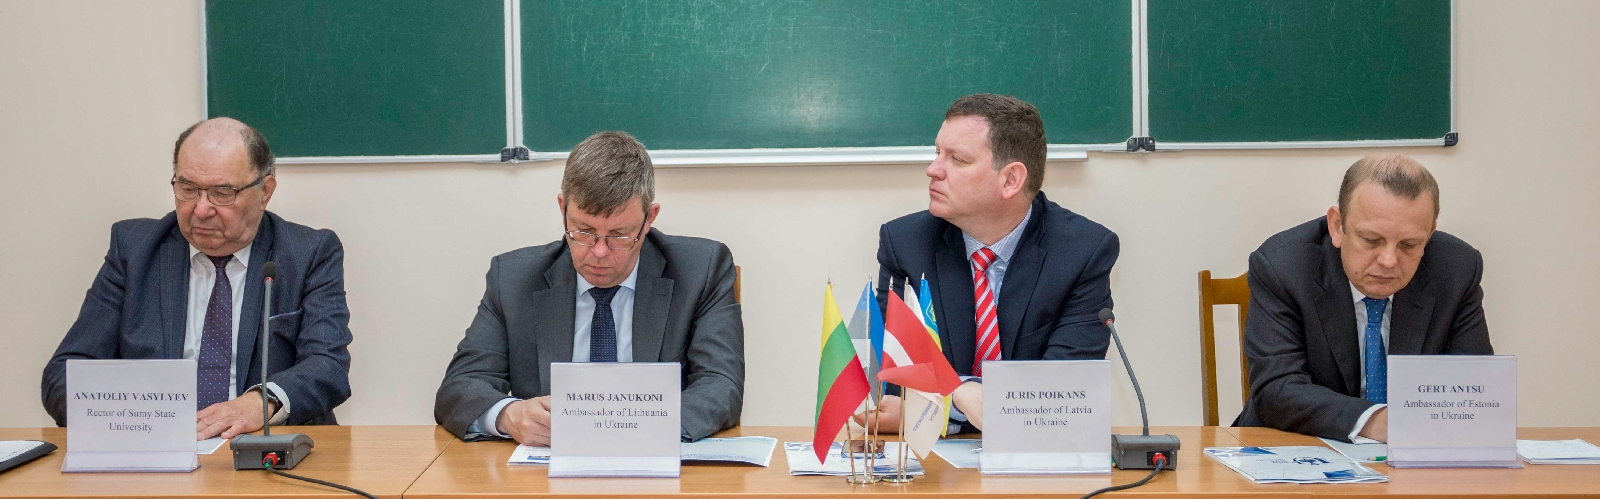 "Image for ICDS Organised in Sumy Public Discussion on ""Baltic and Ukrainian Experience in Strengthening National Resilience"""